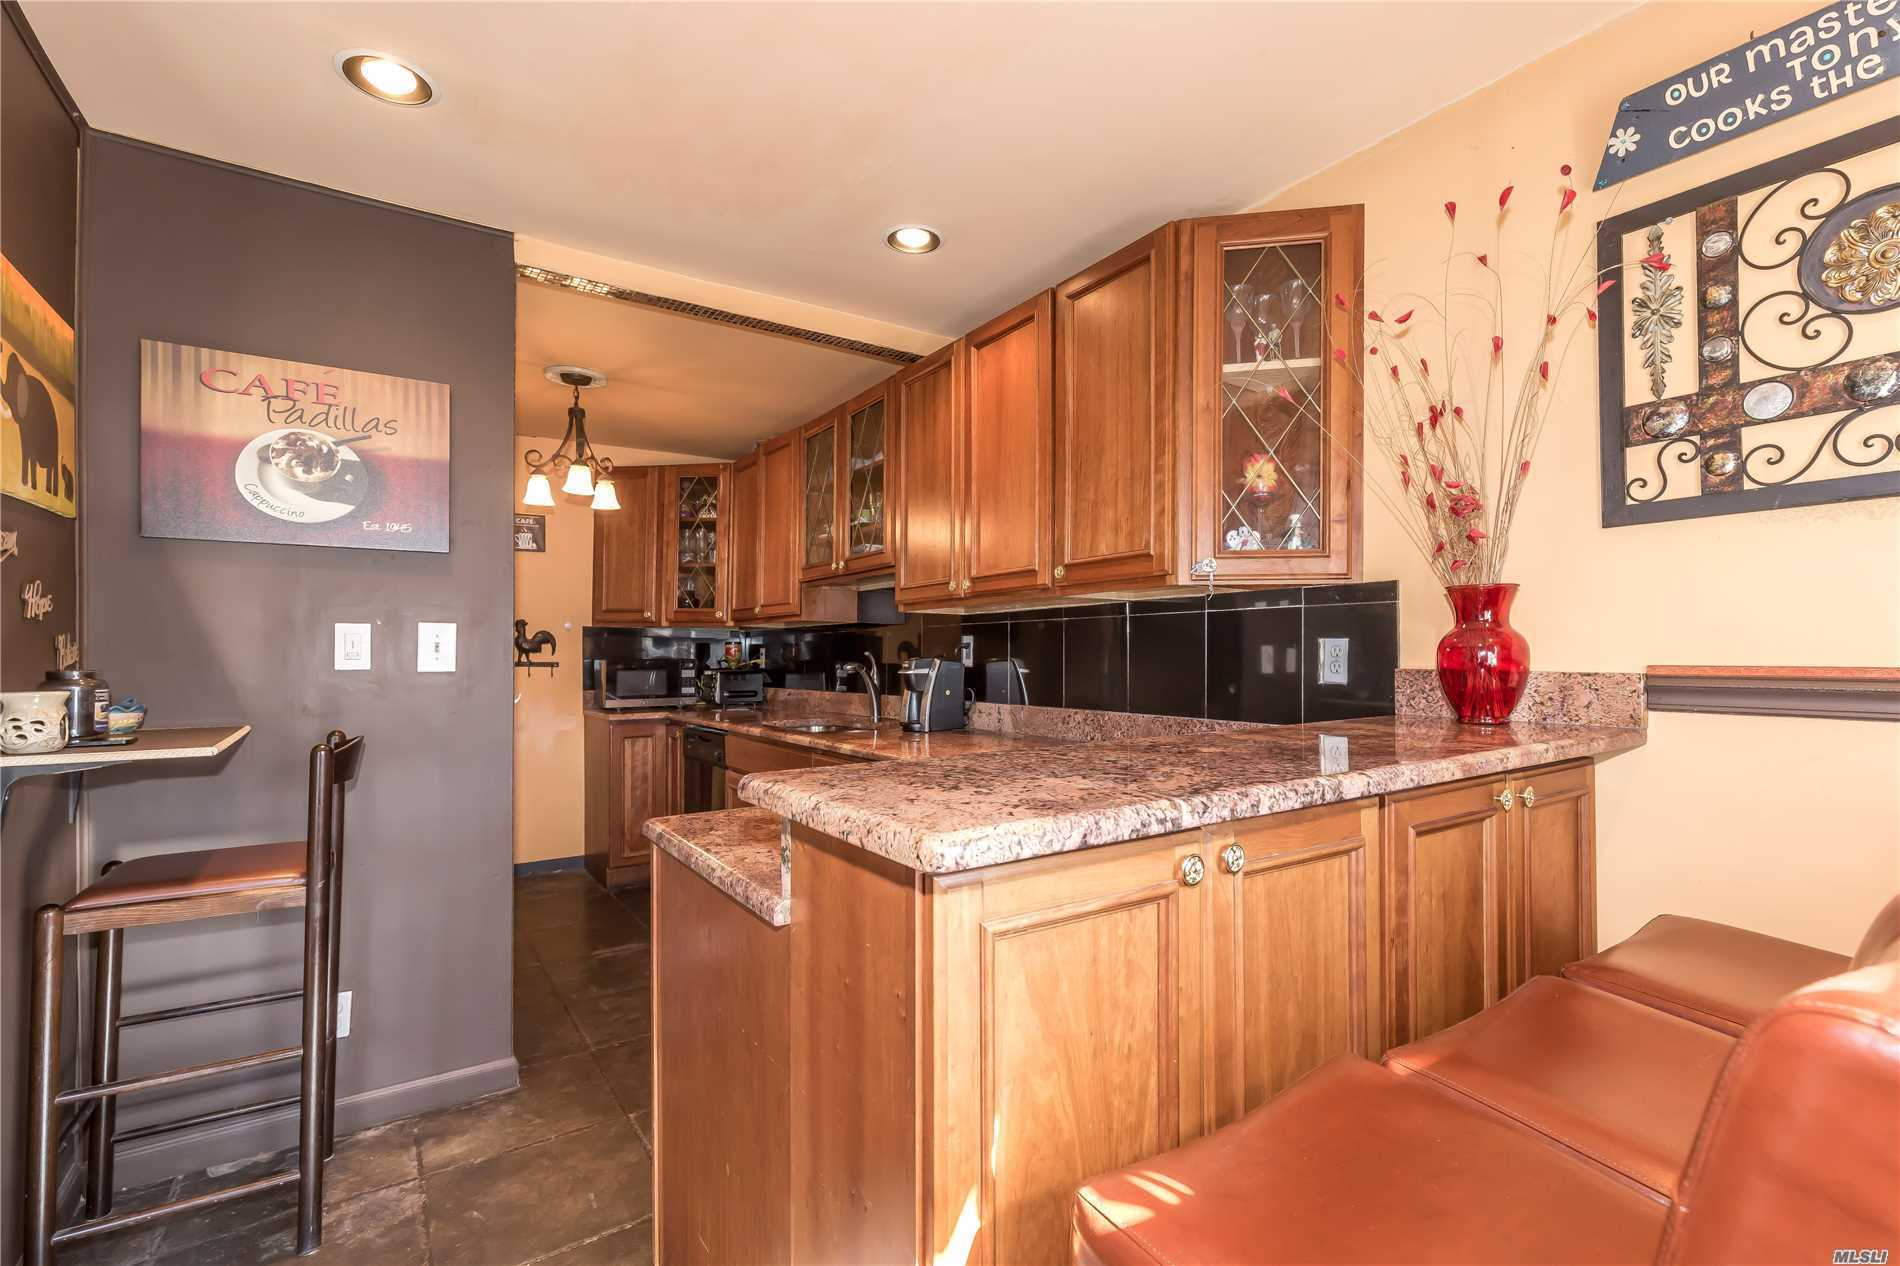 Location, Location, Location! Lovely Brick Ranch, a perfect starter home in the center of Bayside. SD # 26, full basement, cac, large driveway and nice yard. Beautiful kitchen with granite counter tops.